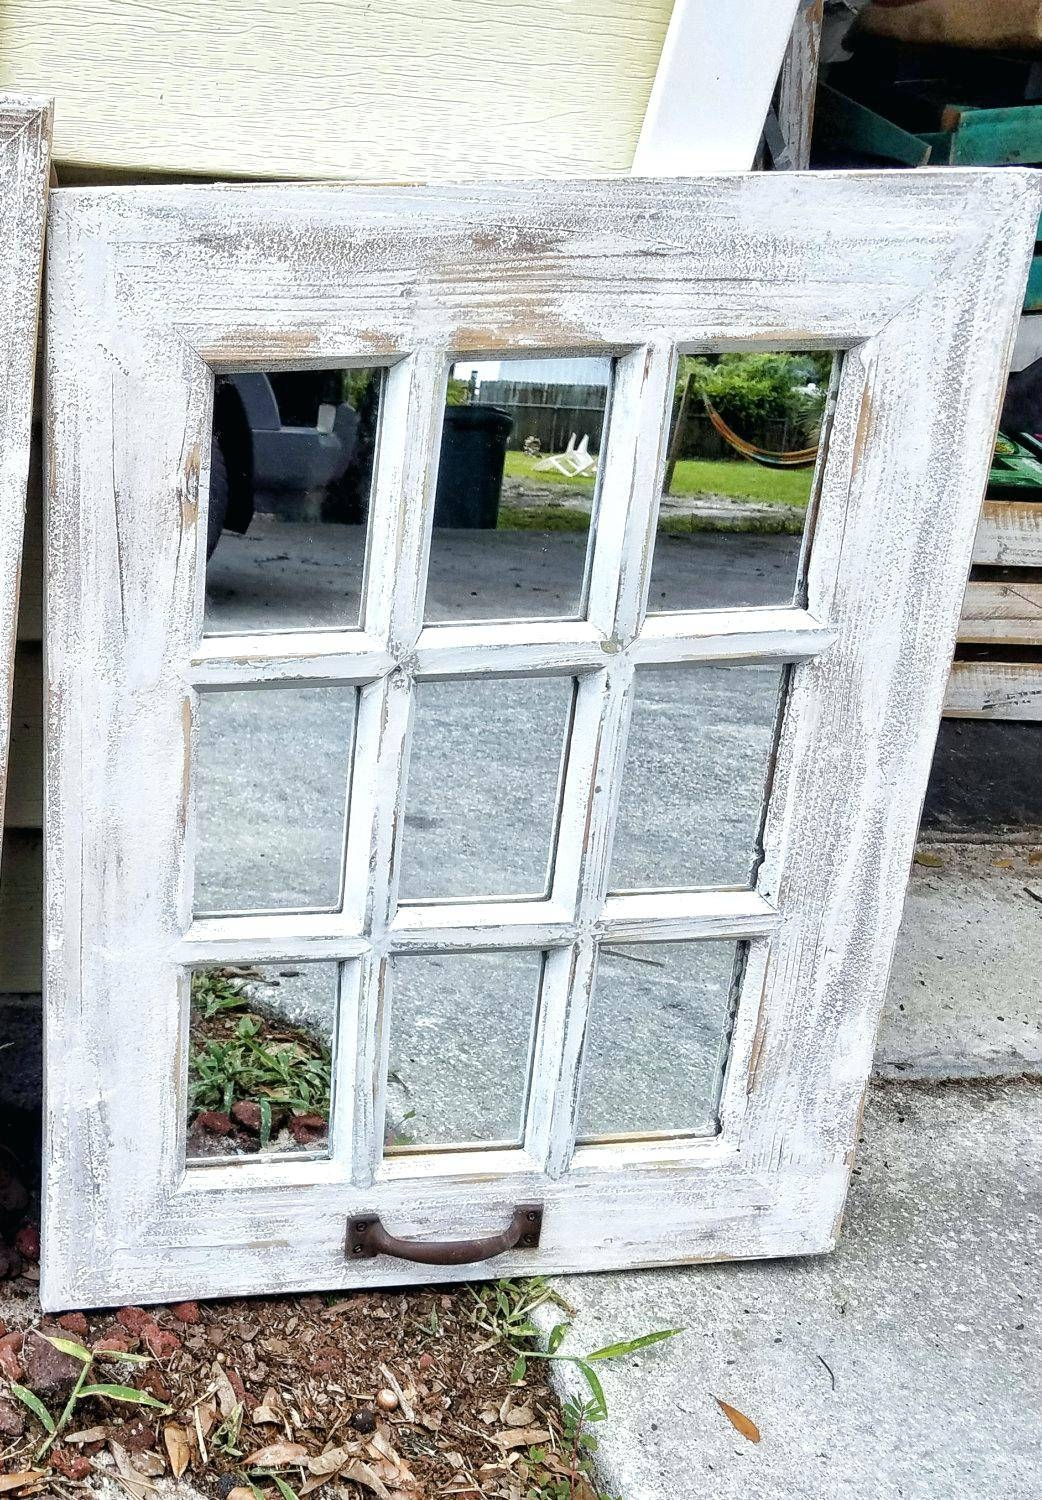 Shabby Chic Window Mirror – Shopwiz with regard to Shabby Chic Window Mirrors (Image 21 of 25)